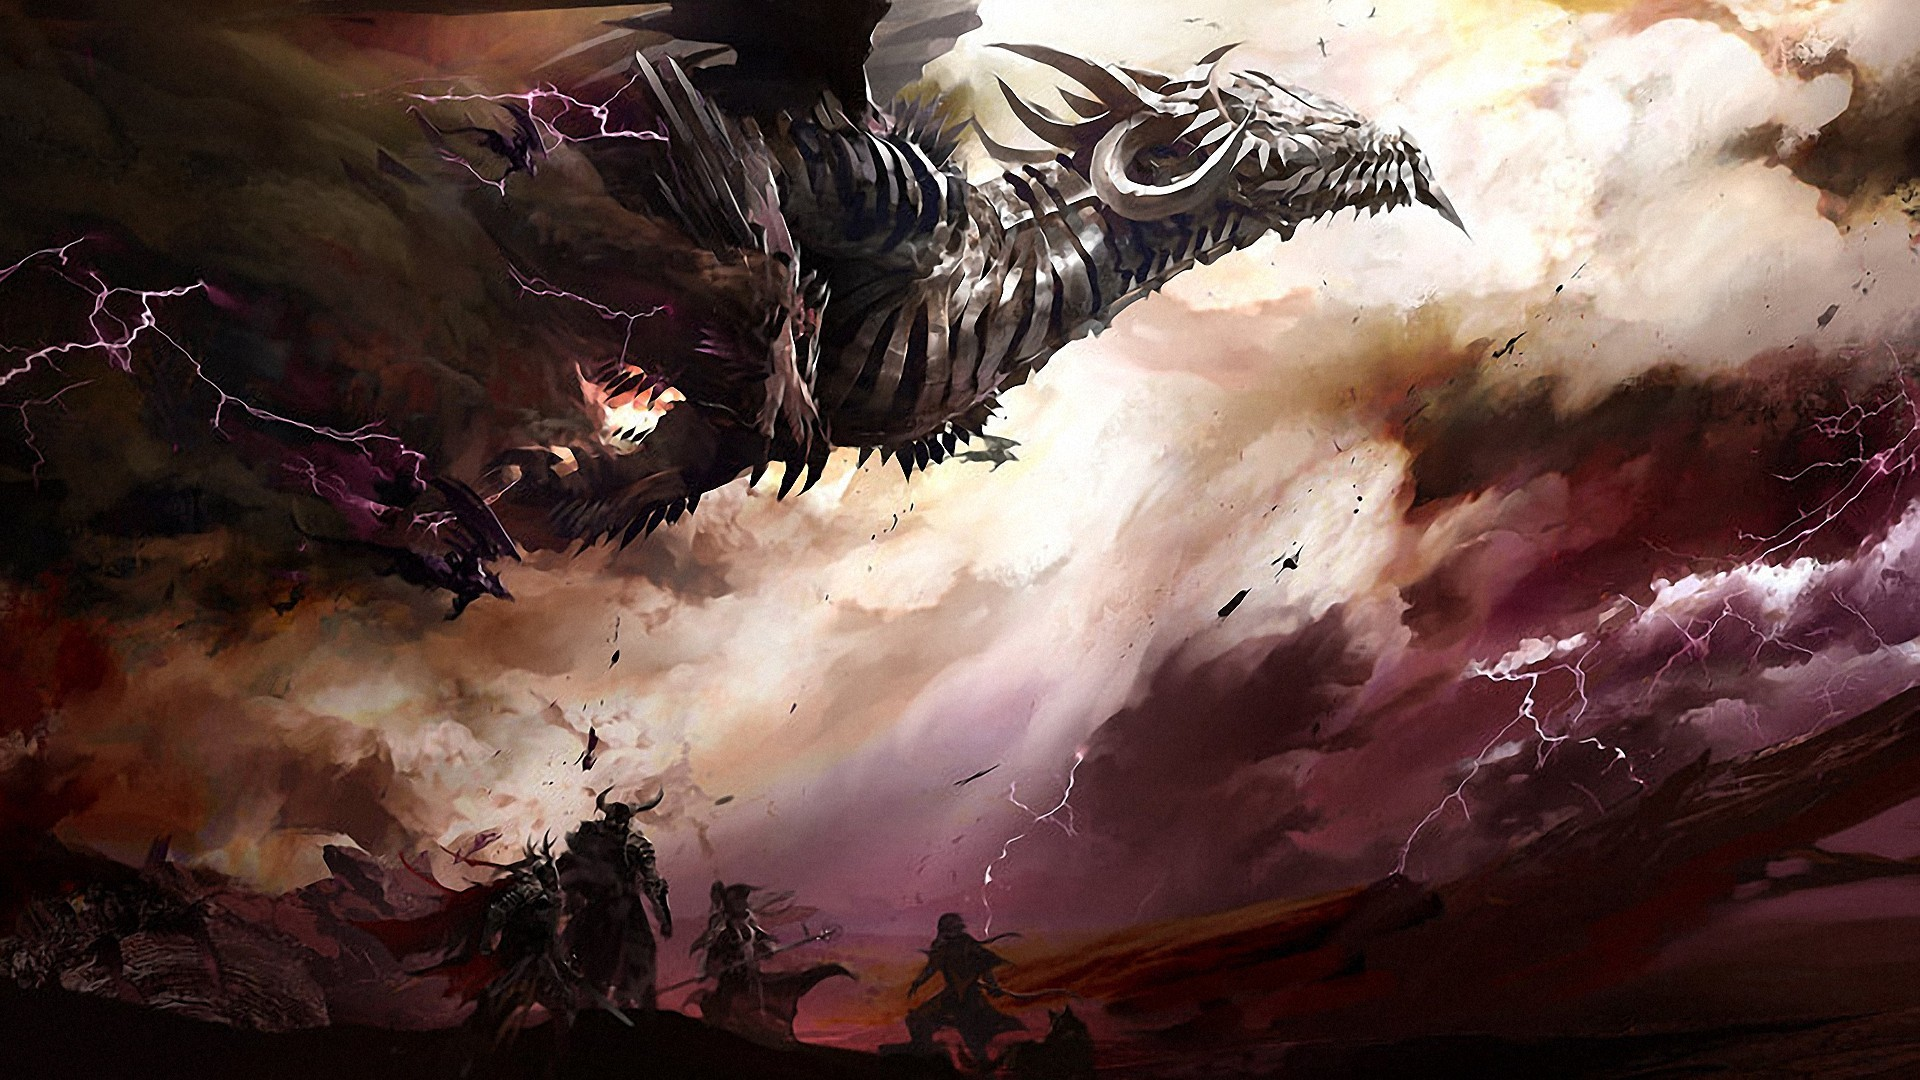 1920x1080 Video Game - Guild Wars 2 Wallpaper